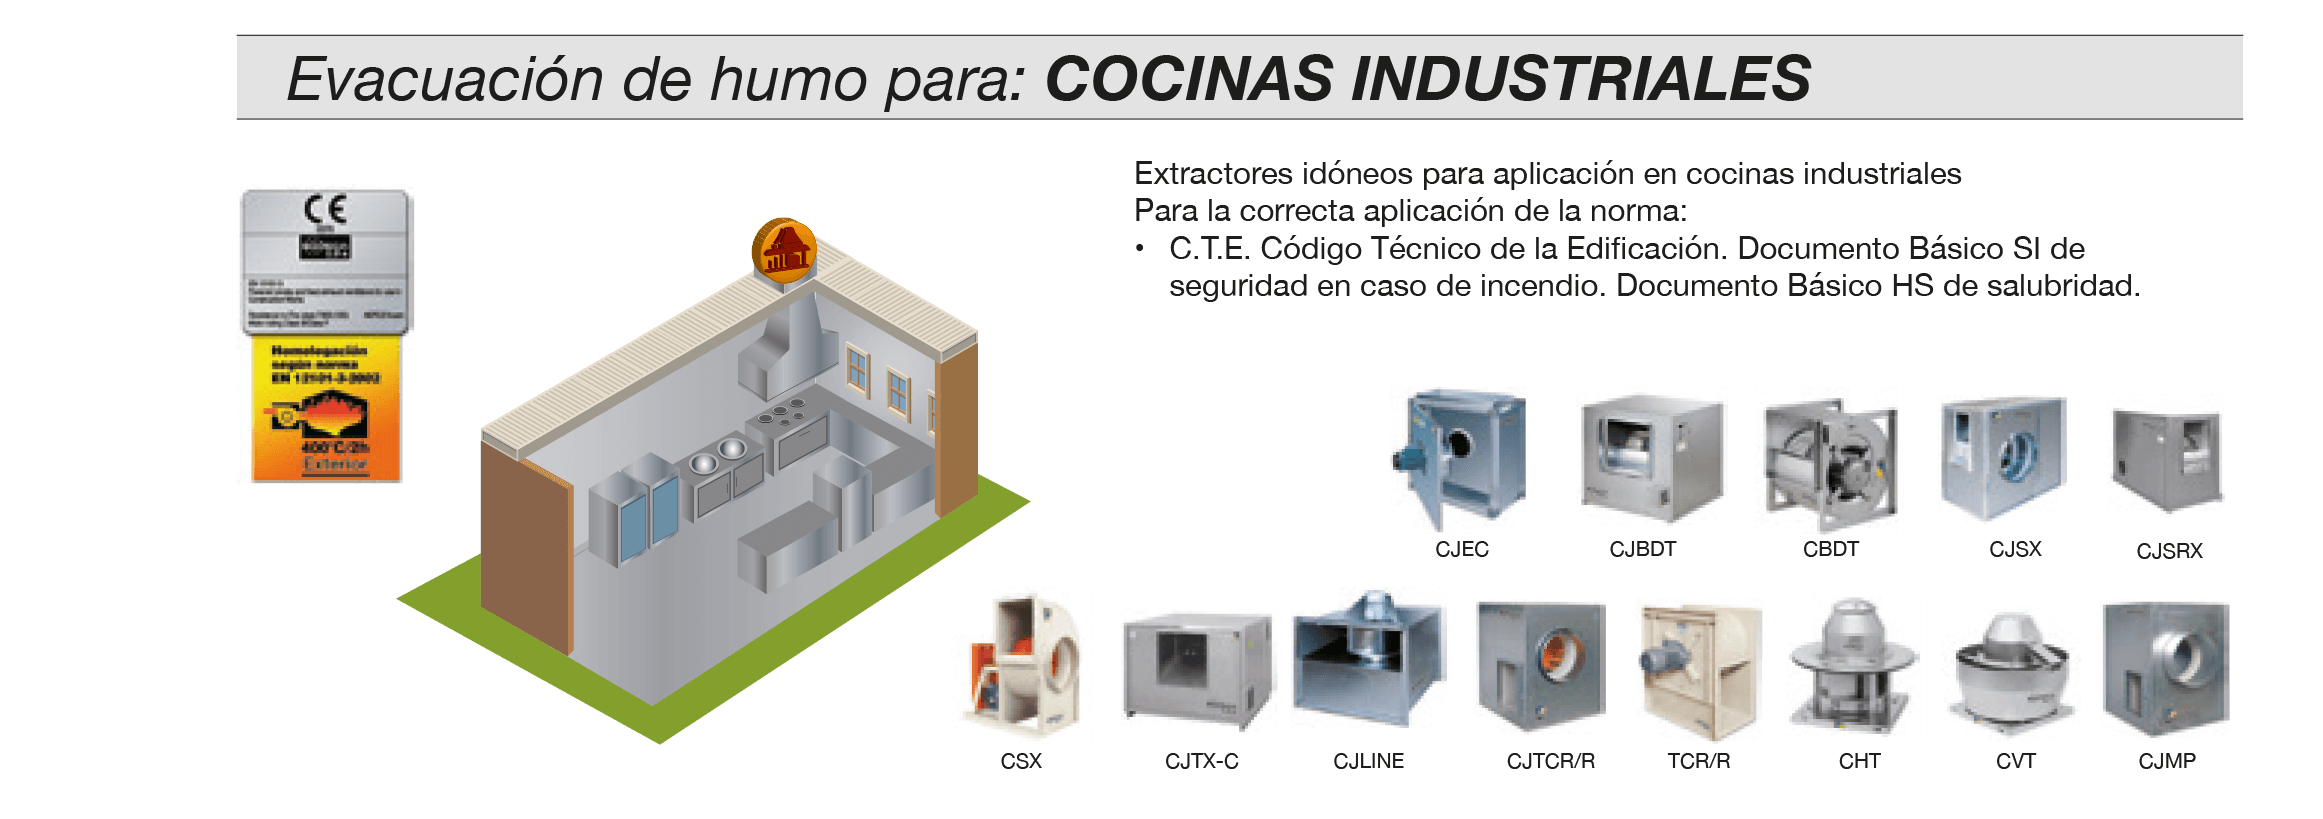 tipos_extraccion-humo-cocinas-industriales